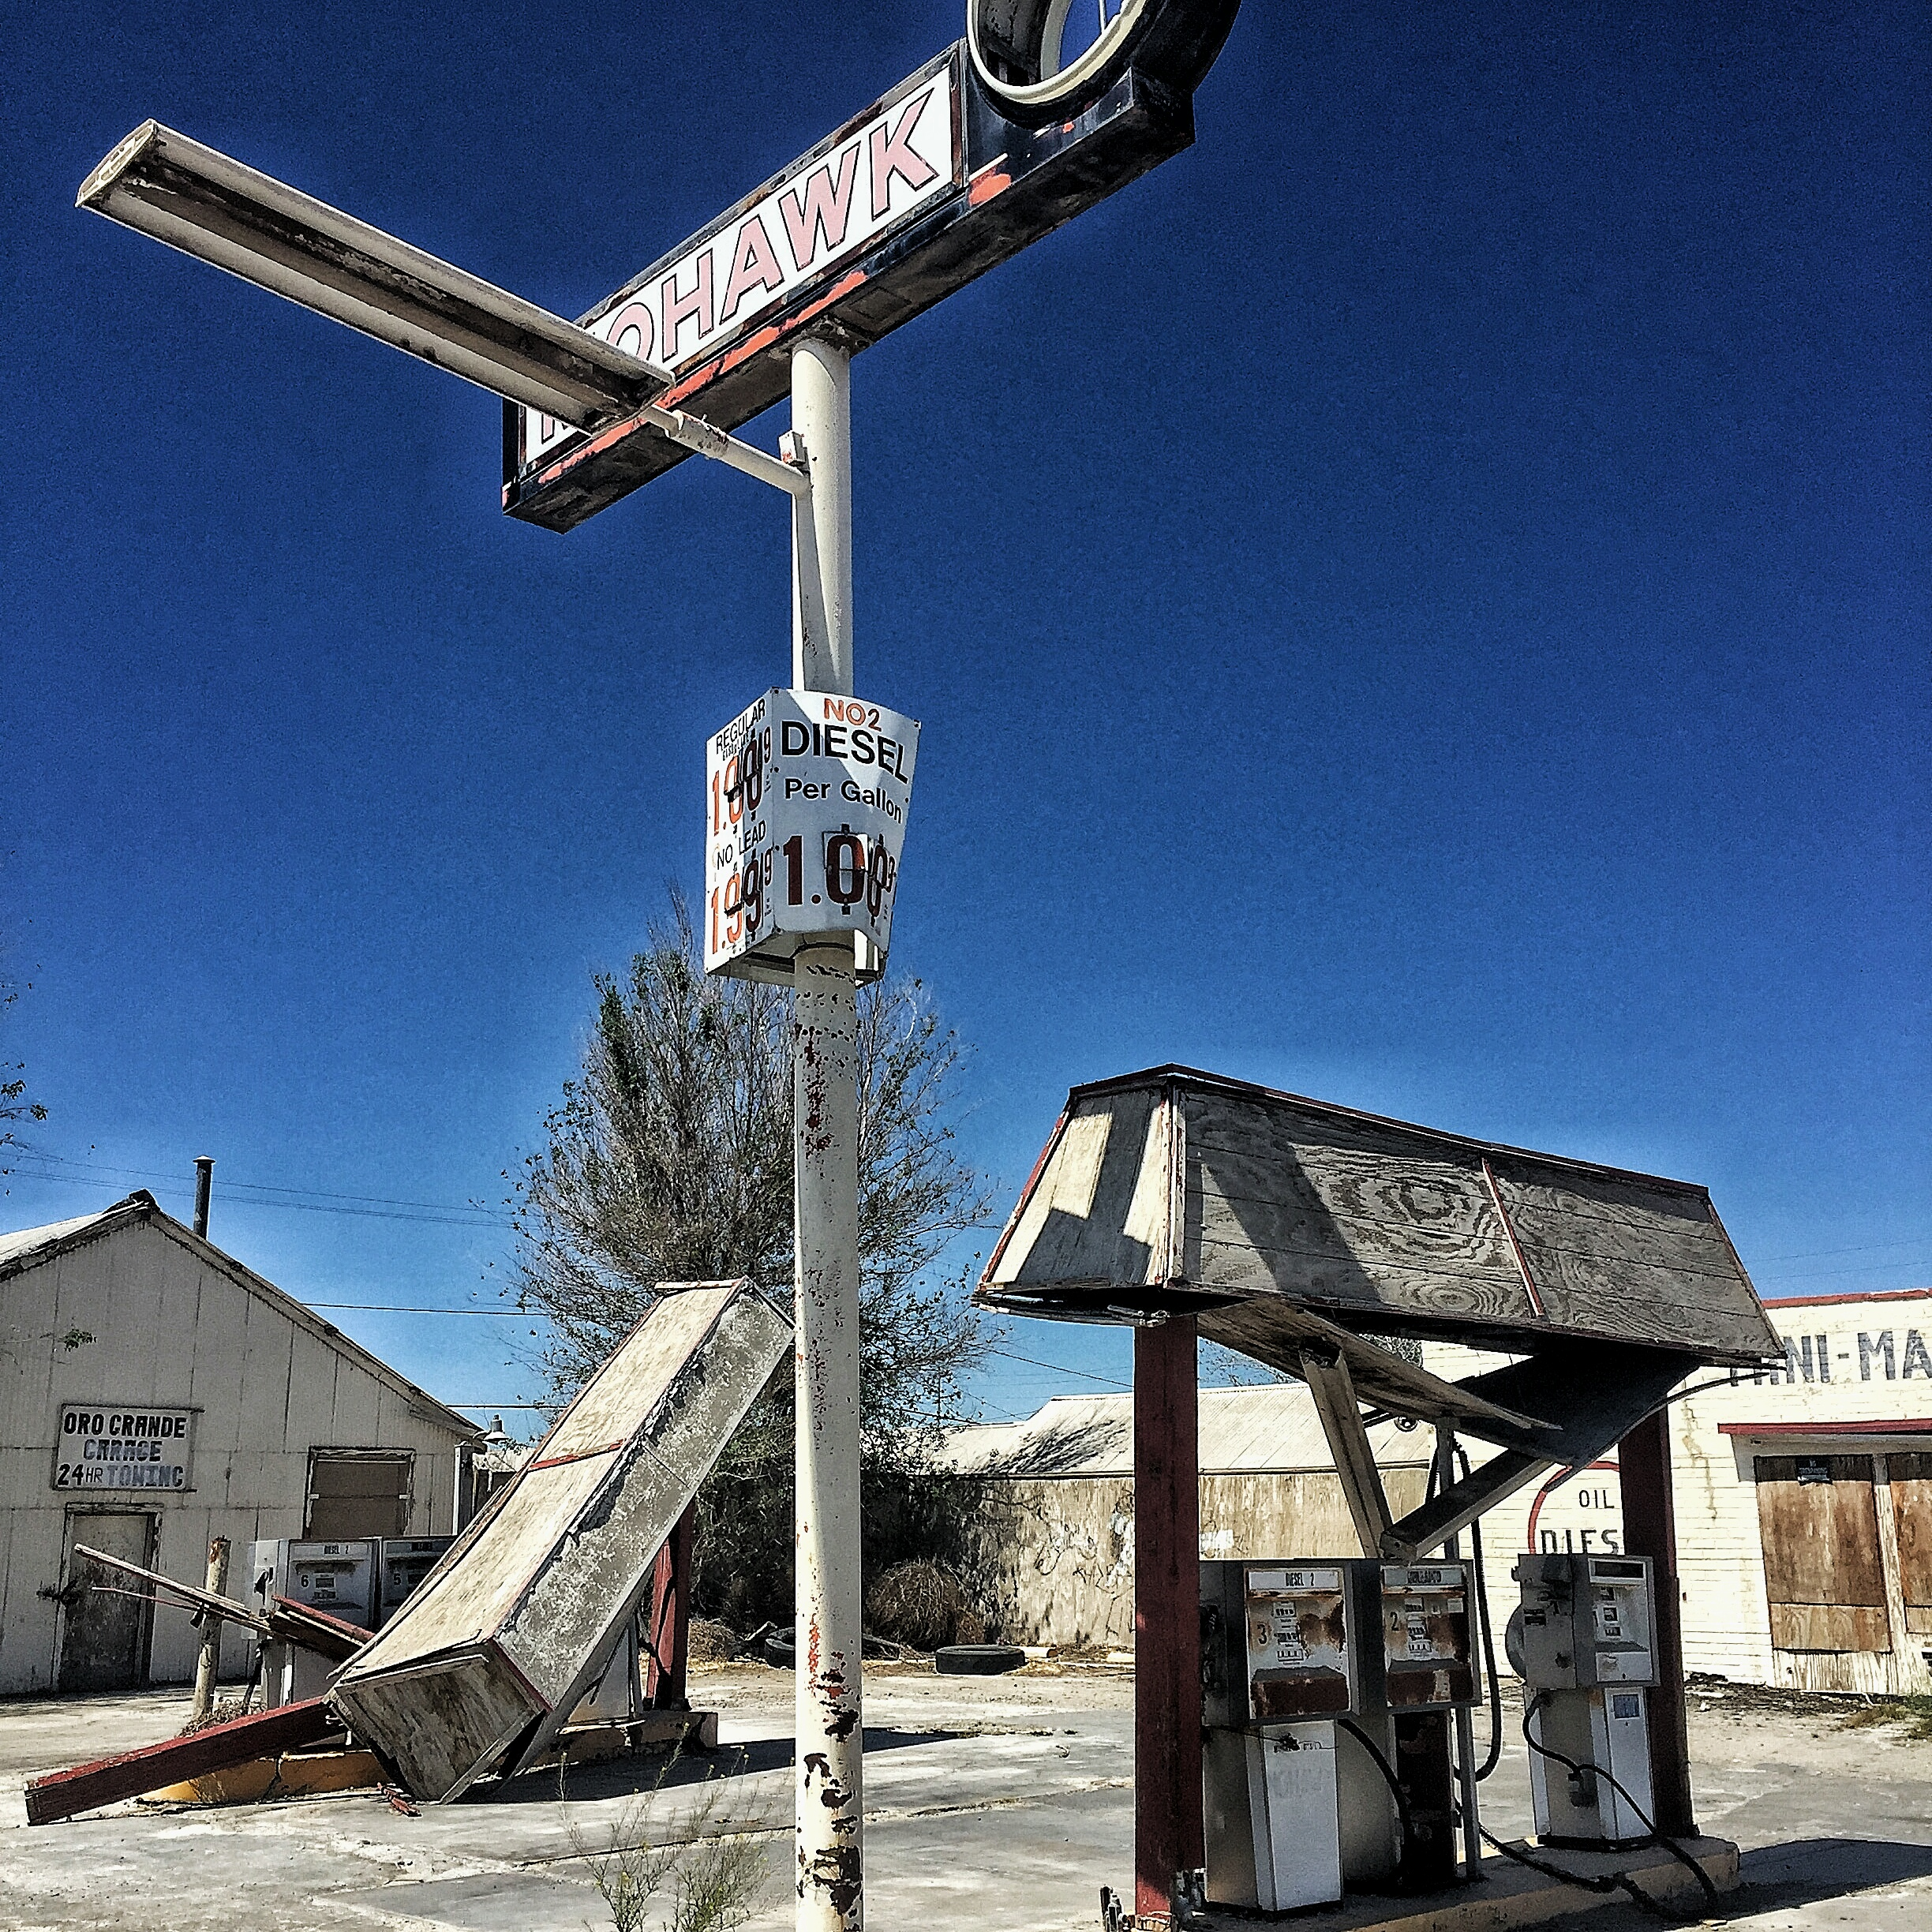 file:route 66 - mohawk mini mart - wikimedia commons